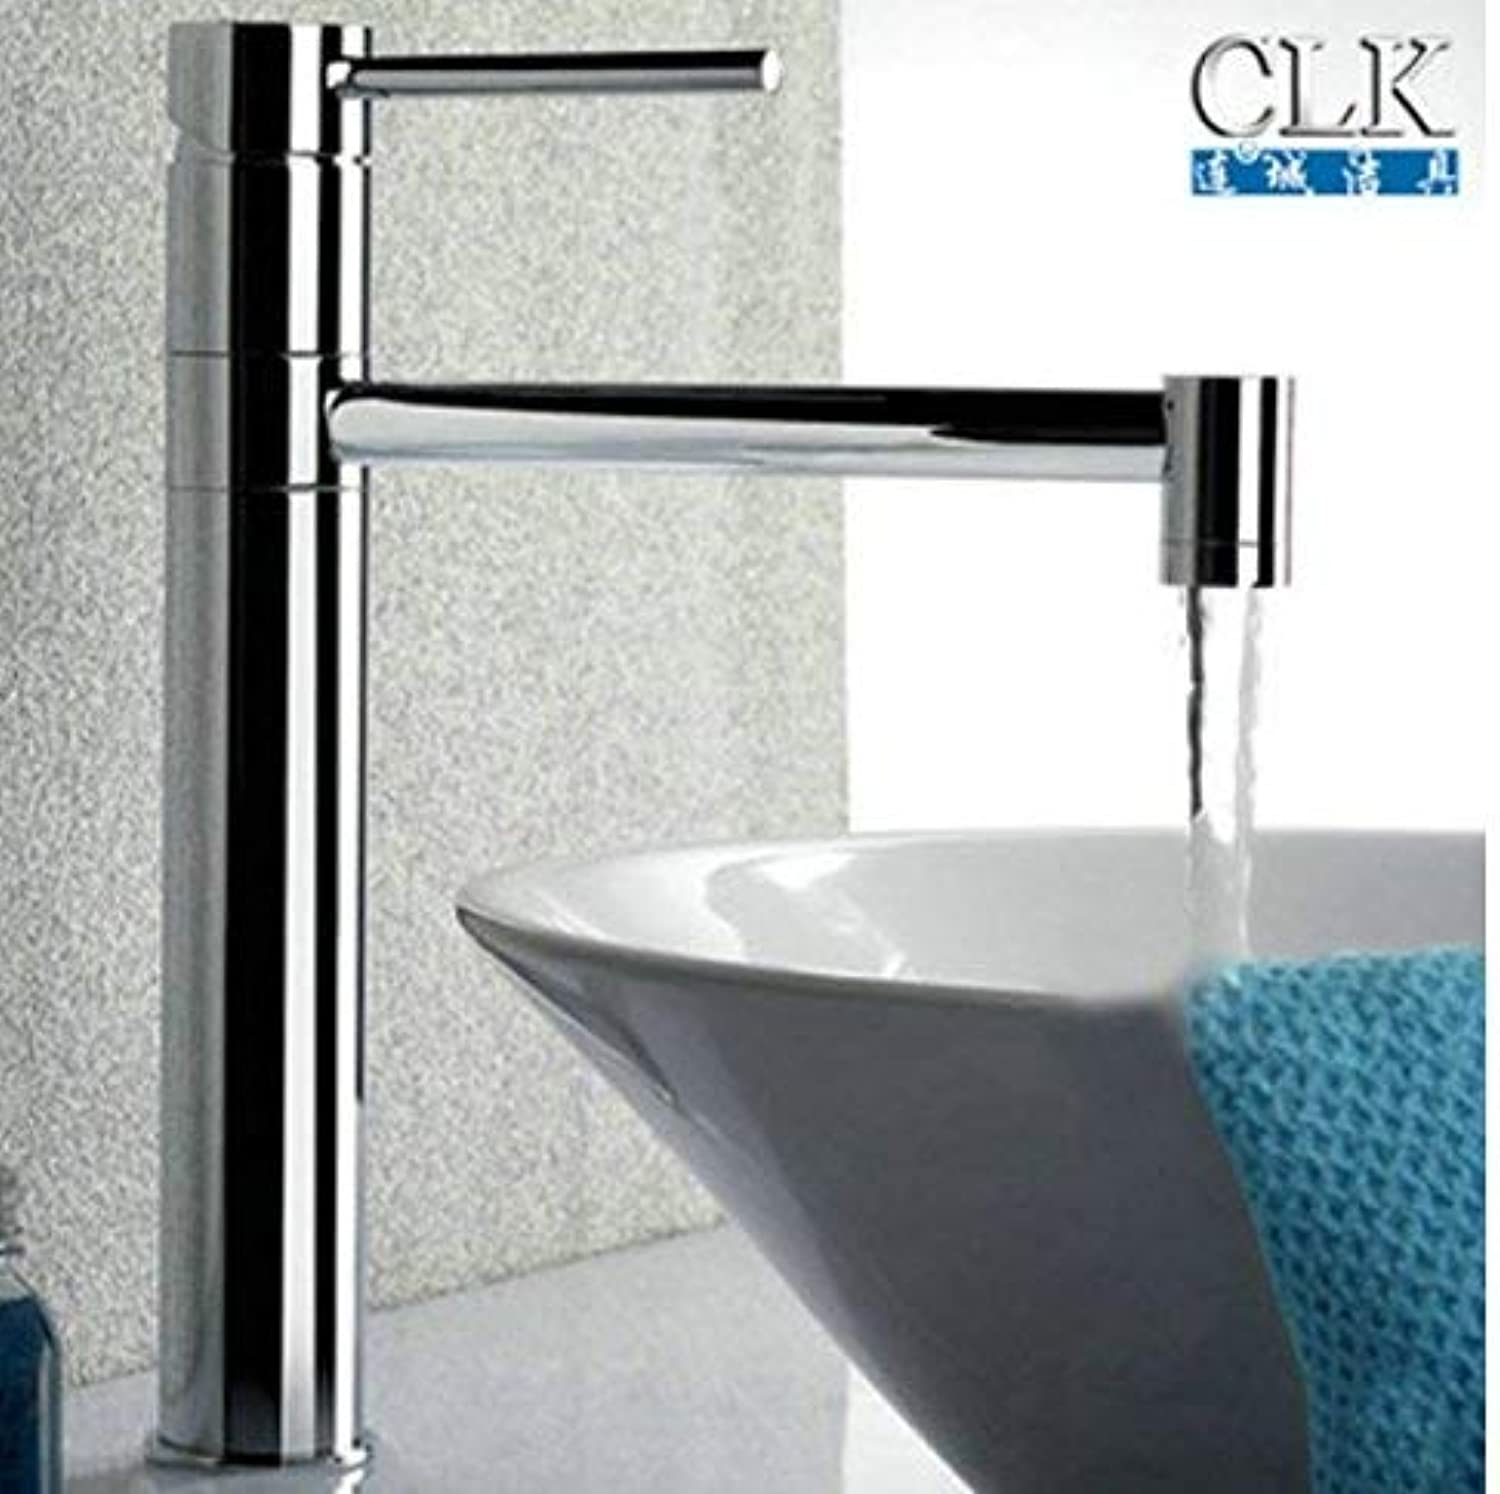 Oudan Basin Mixer Tap Bathroom Sink Faucet The cross-border for the basin mixer with high-copper hot and cold basin tap Turn on the wash basin mixer